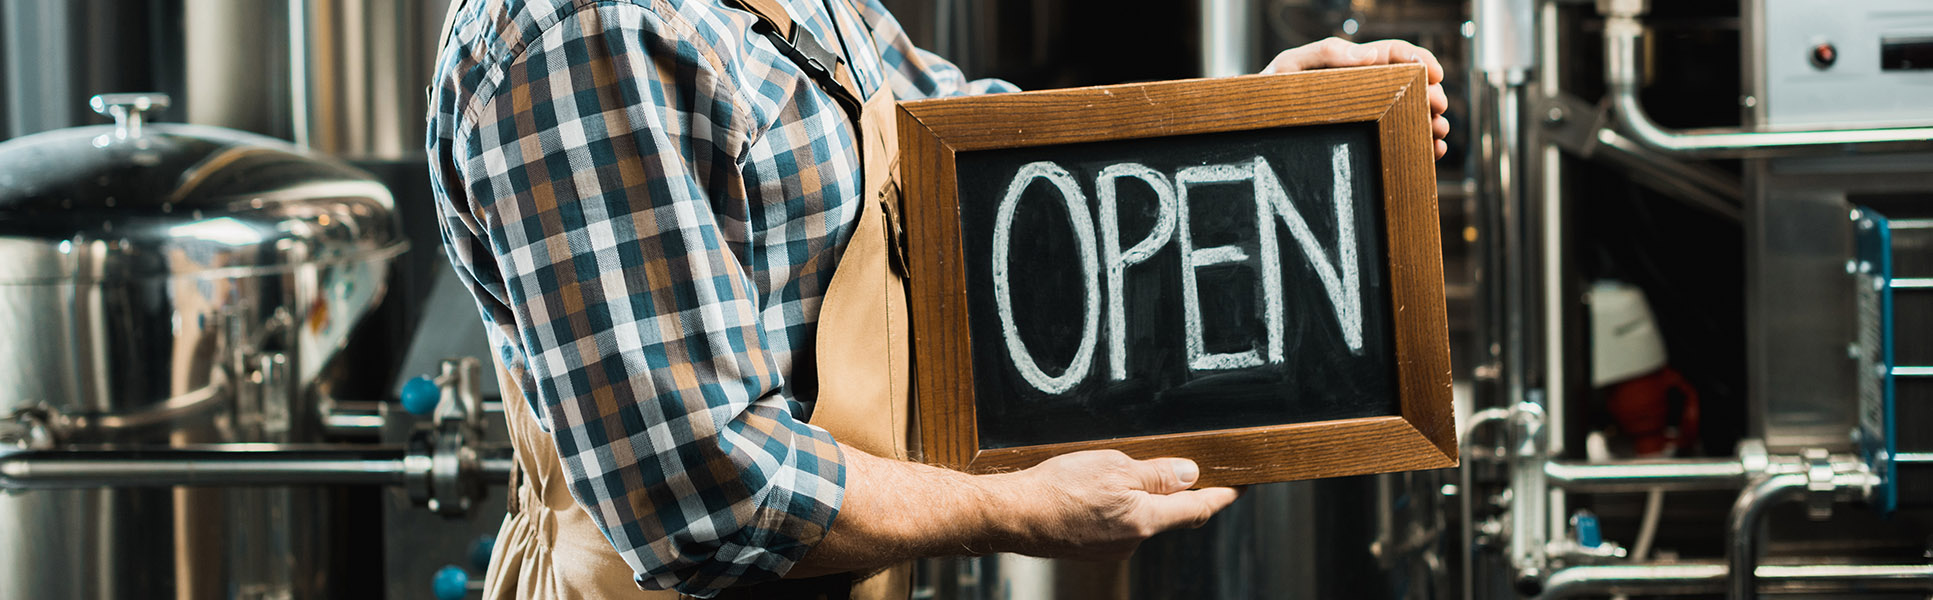 Small Business Open for Business